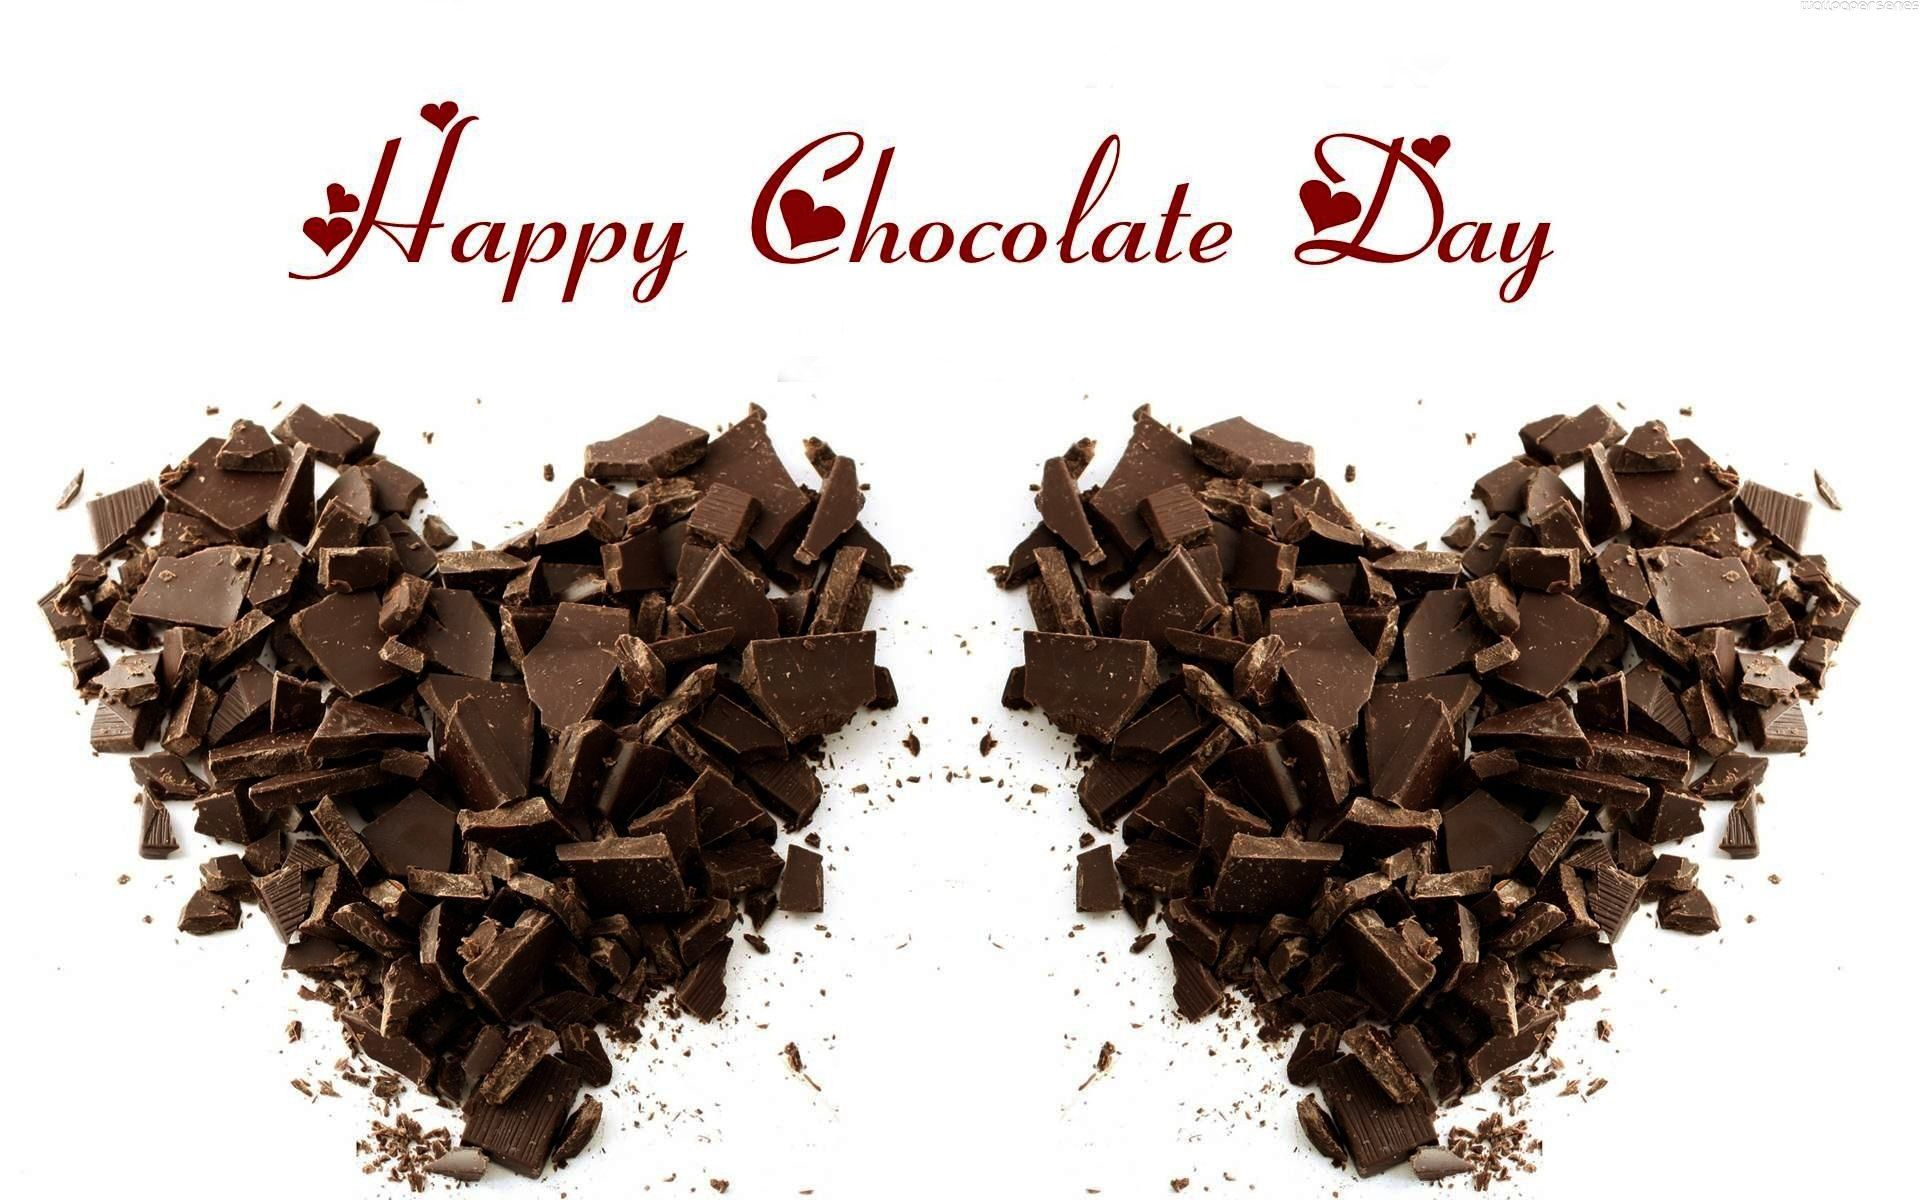 world chocolate day essay for students feb celebration